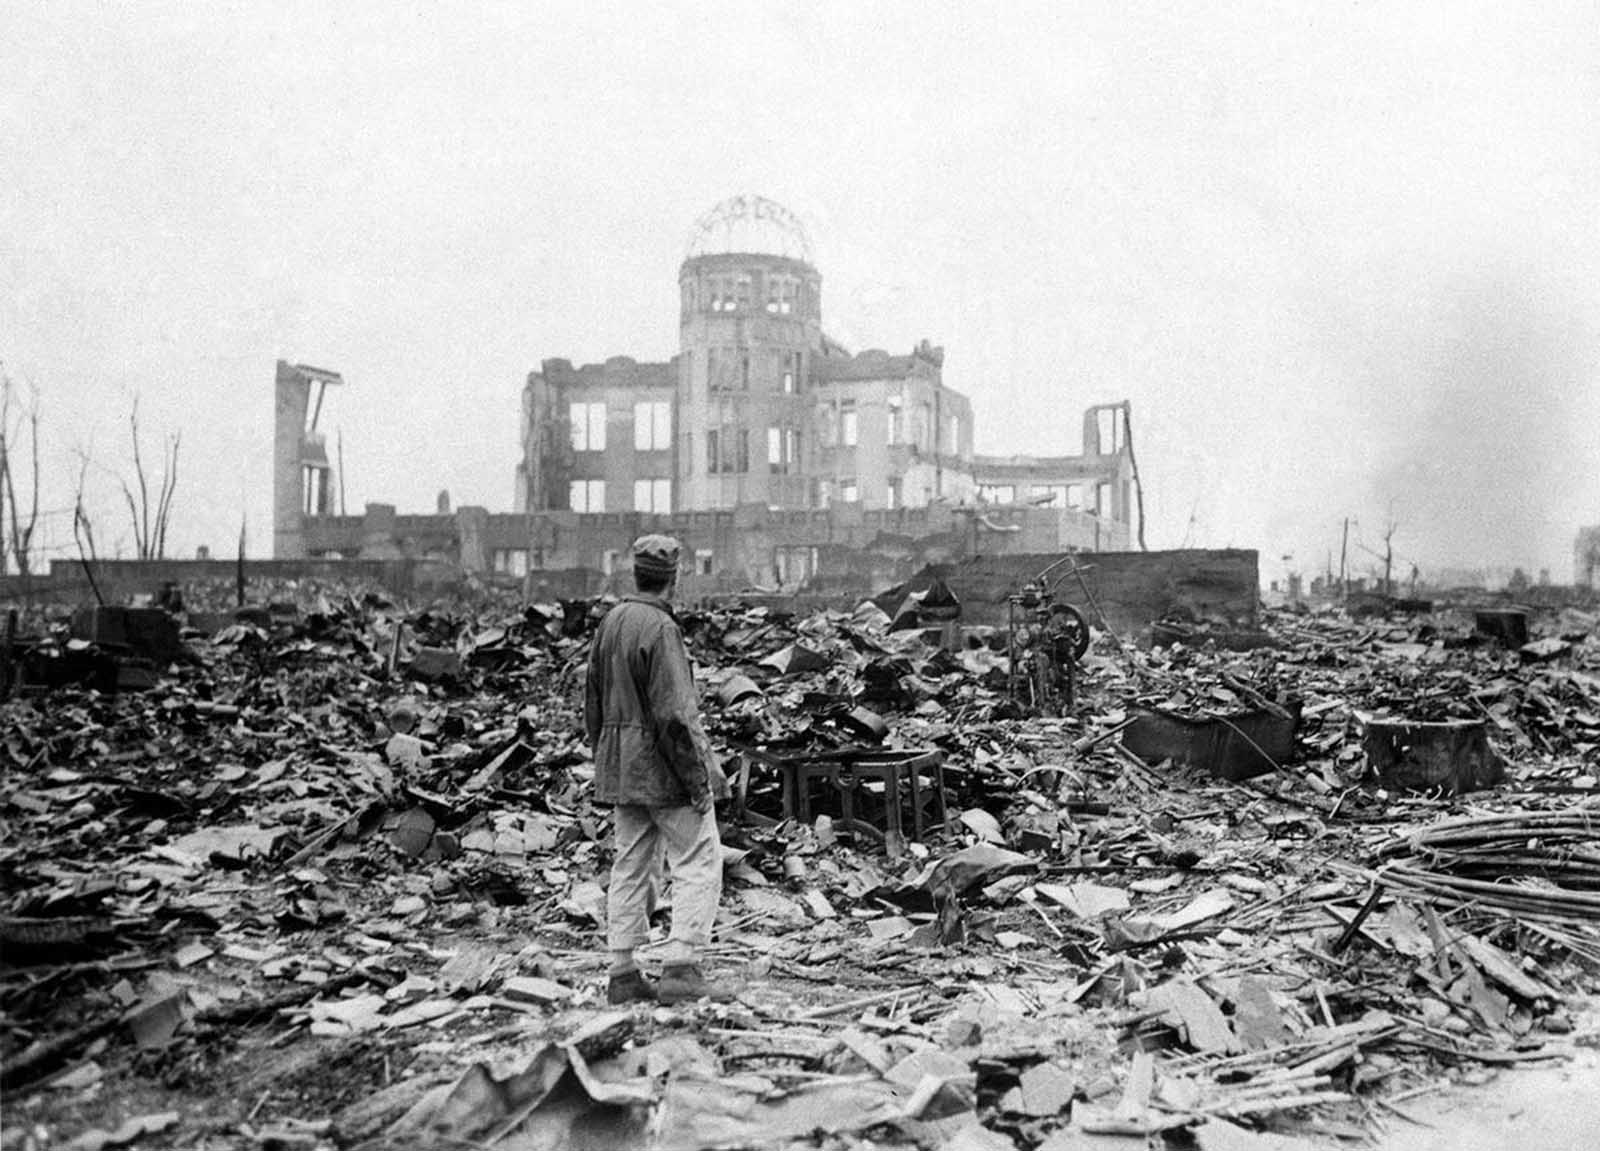 An allied correspondent stands in the radioactive rubble in front of the shell of a building that once was an exhibition hall in Hiroshima, Japan, one month after the first atomic bomb ever used in warfare was dropped on the city by the U.S. The explosion took place almost directly above the dome.